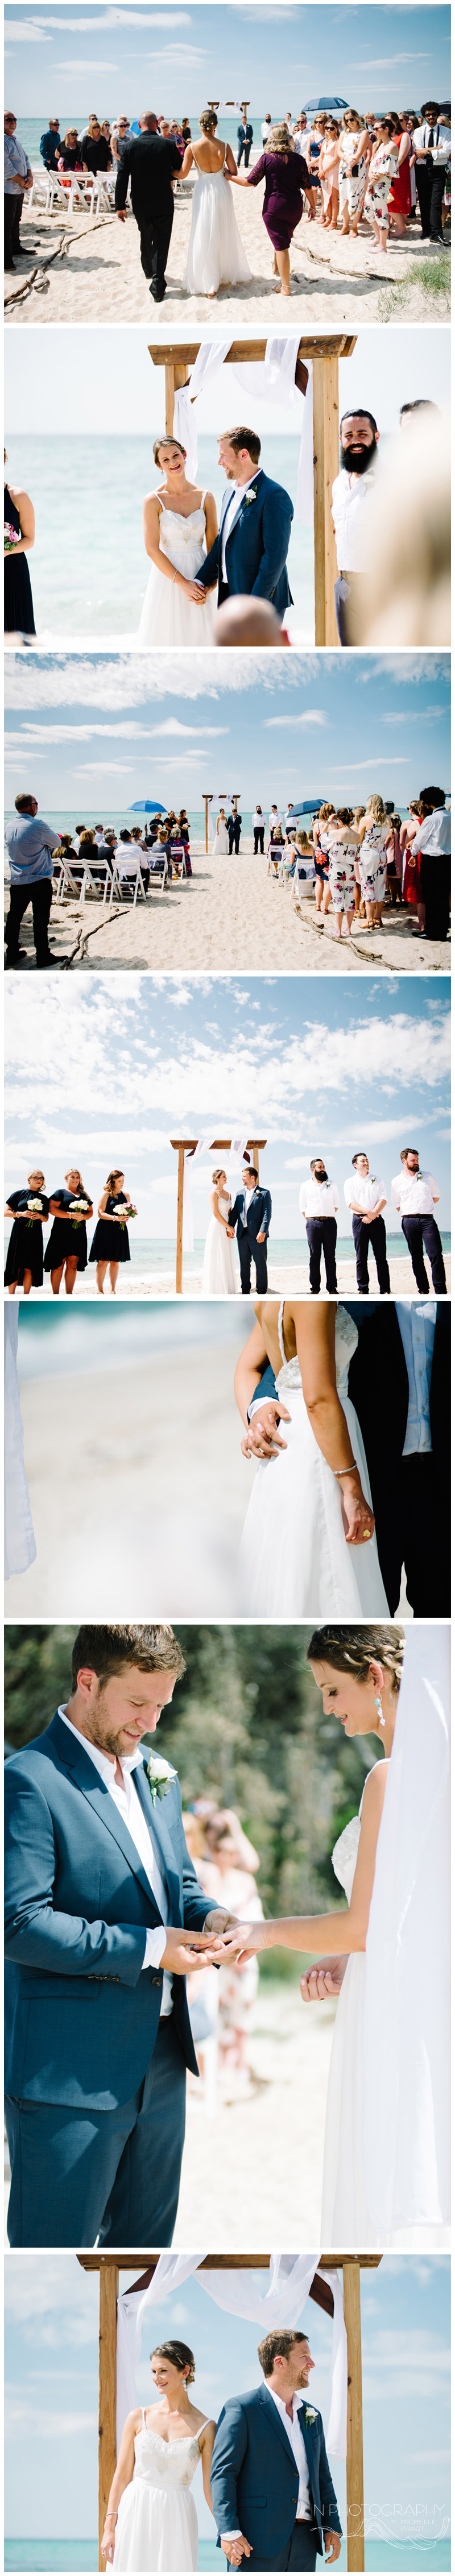 Beach wedding ceremony on mornington peninsula photographed by Michelle Pragt